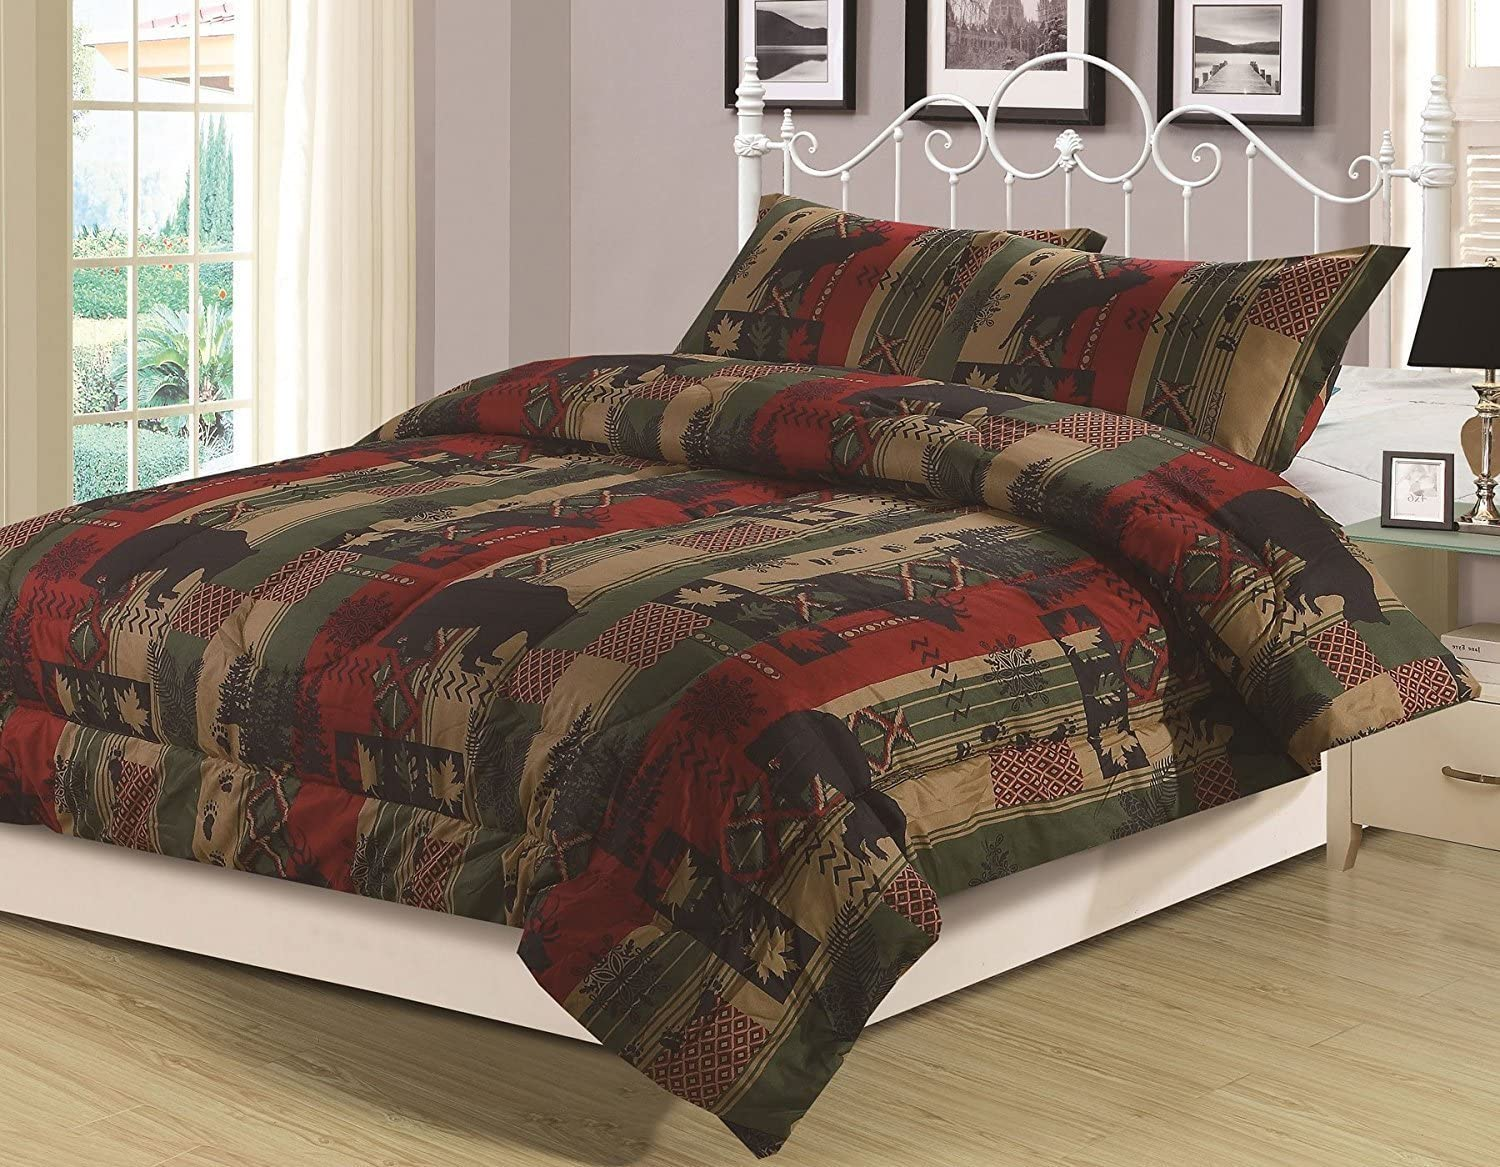 HowPlumb Rustic Southwest Twin Comforter 2 Piece Bedding Set Bear Cabin Lodge Nature Wildlife